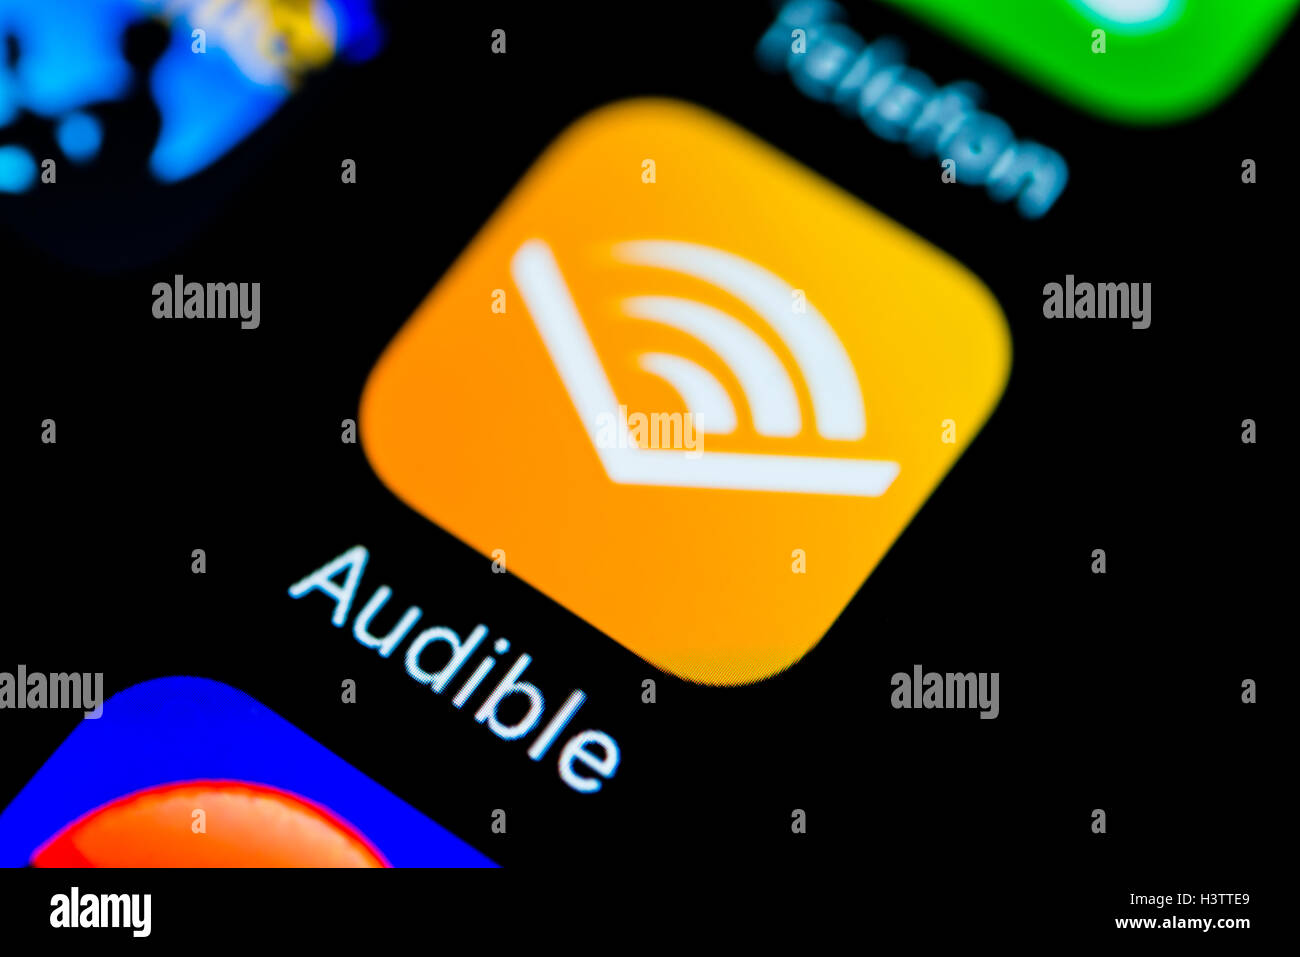 Audible app icon, displayed on smartphone screen - Stock Image